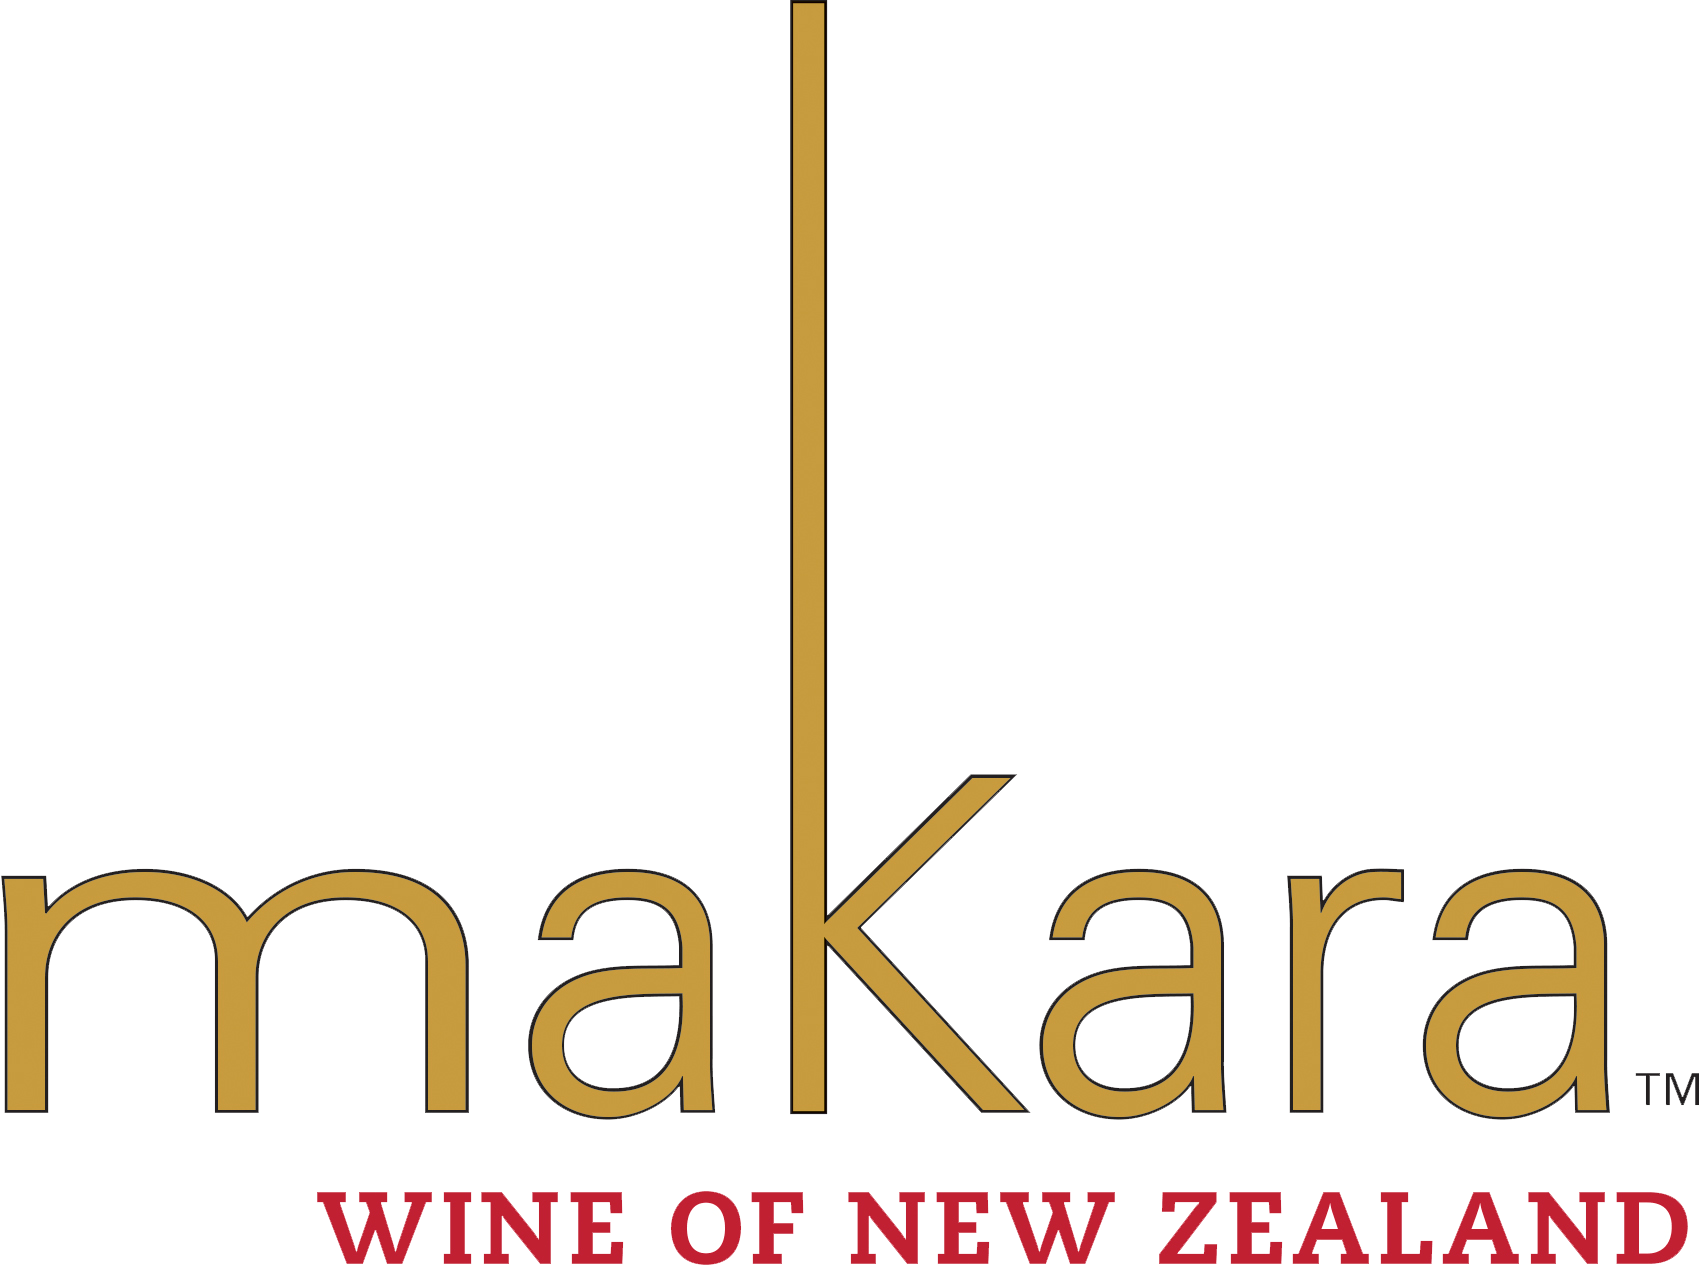 Makara Wines of New Zealand